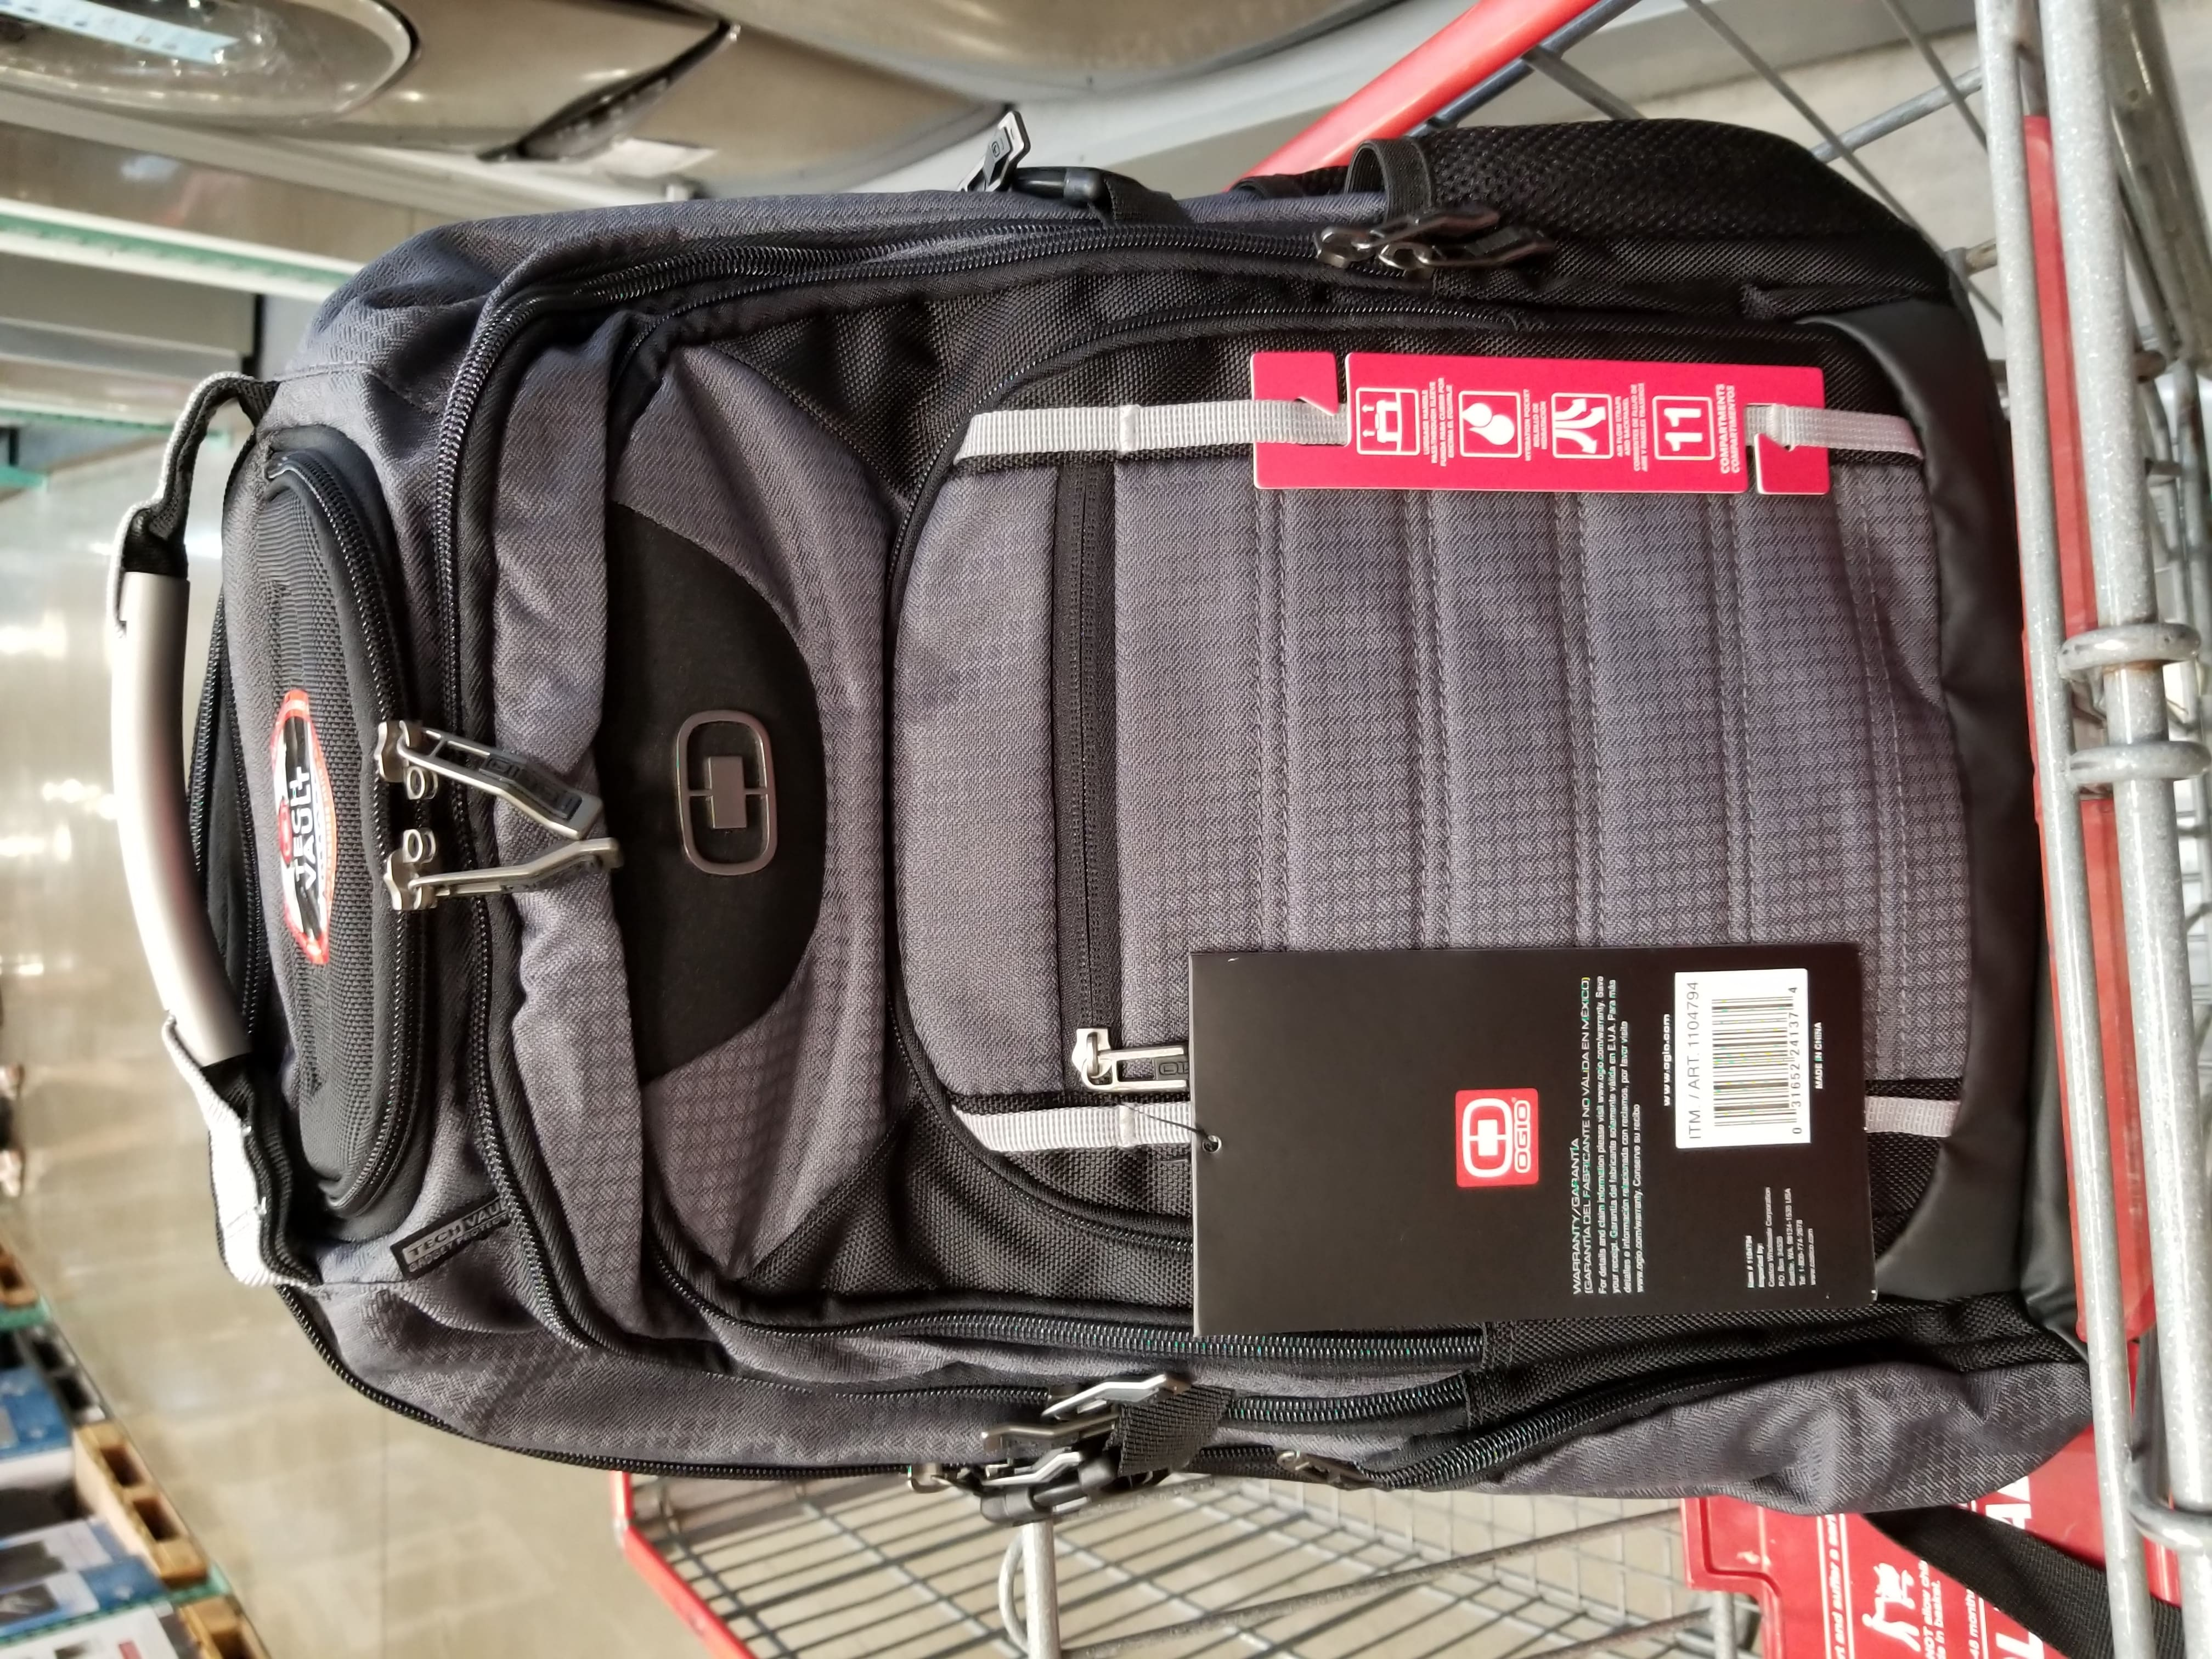 6f76e2638d1 Ogio prospect backpack on clearance  24.97 at Costco(Warehouse only). Ymmv  - Slickdeals.net